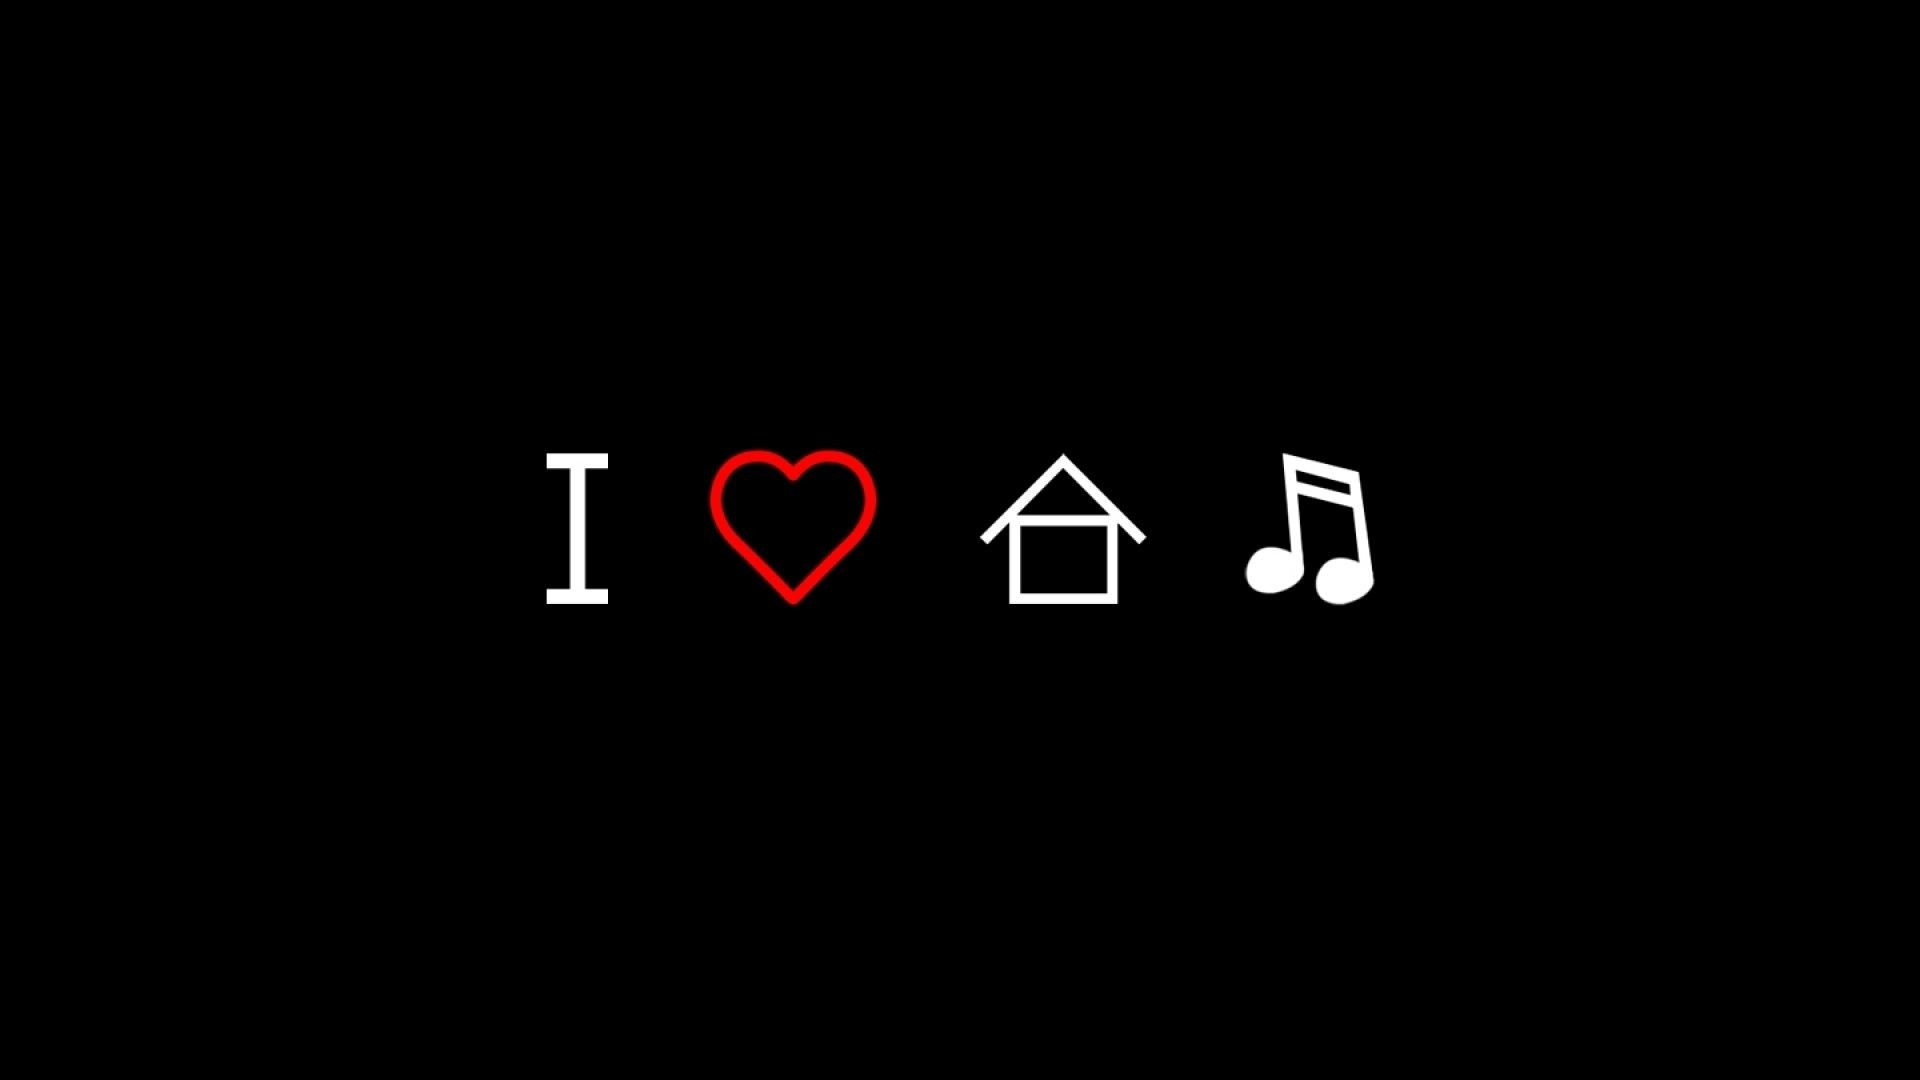 1920x1080 I Heart Music wallpapers (68 Wallpapers)